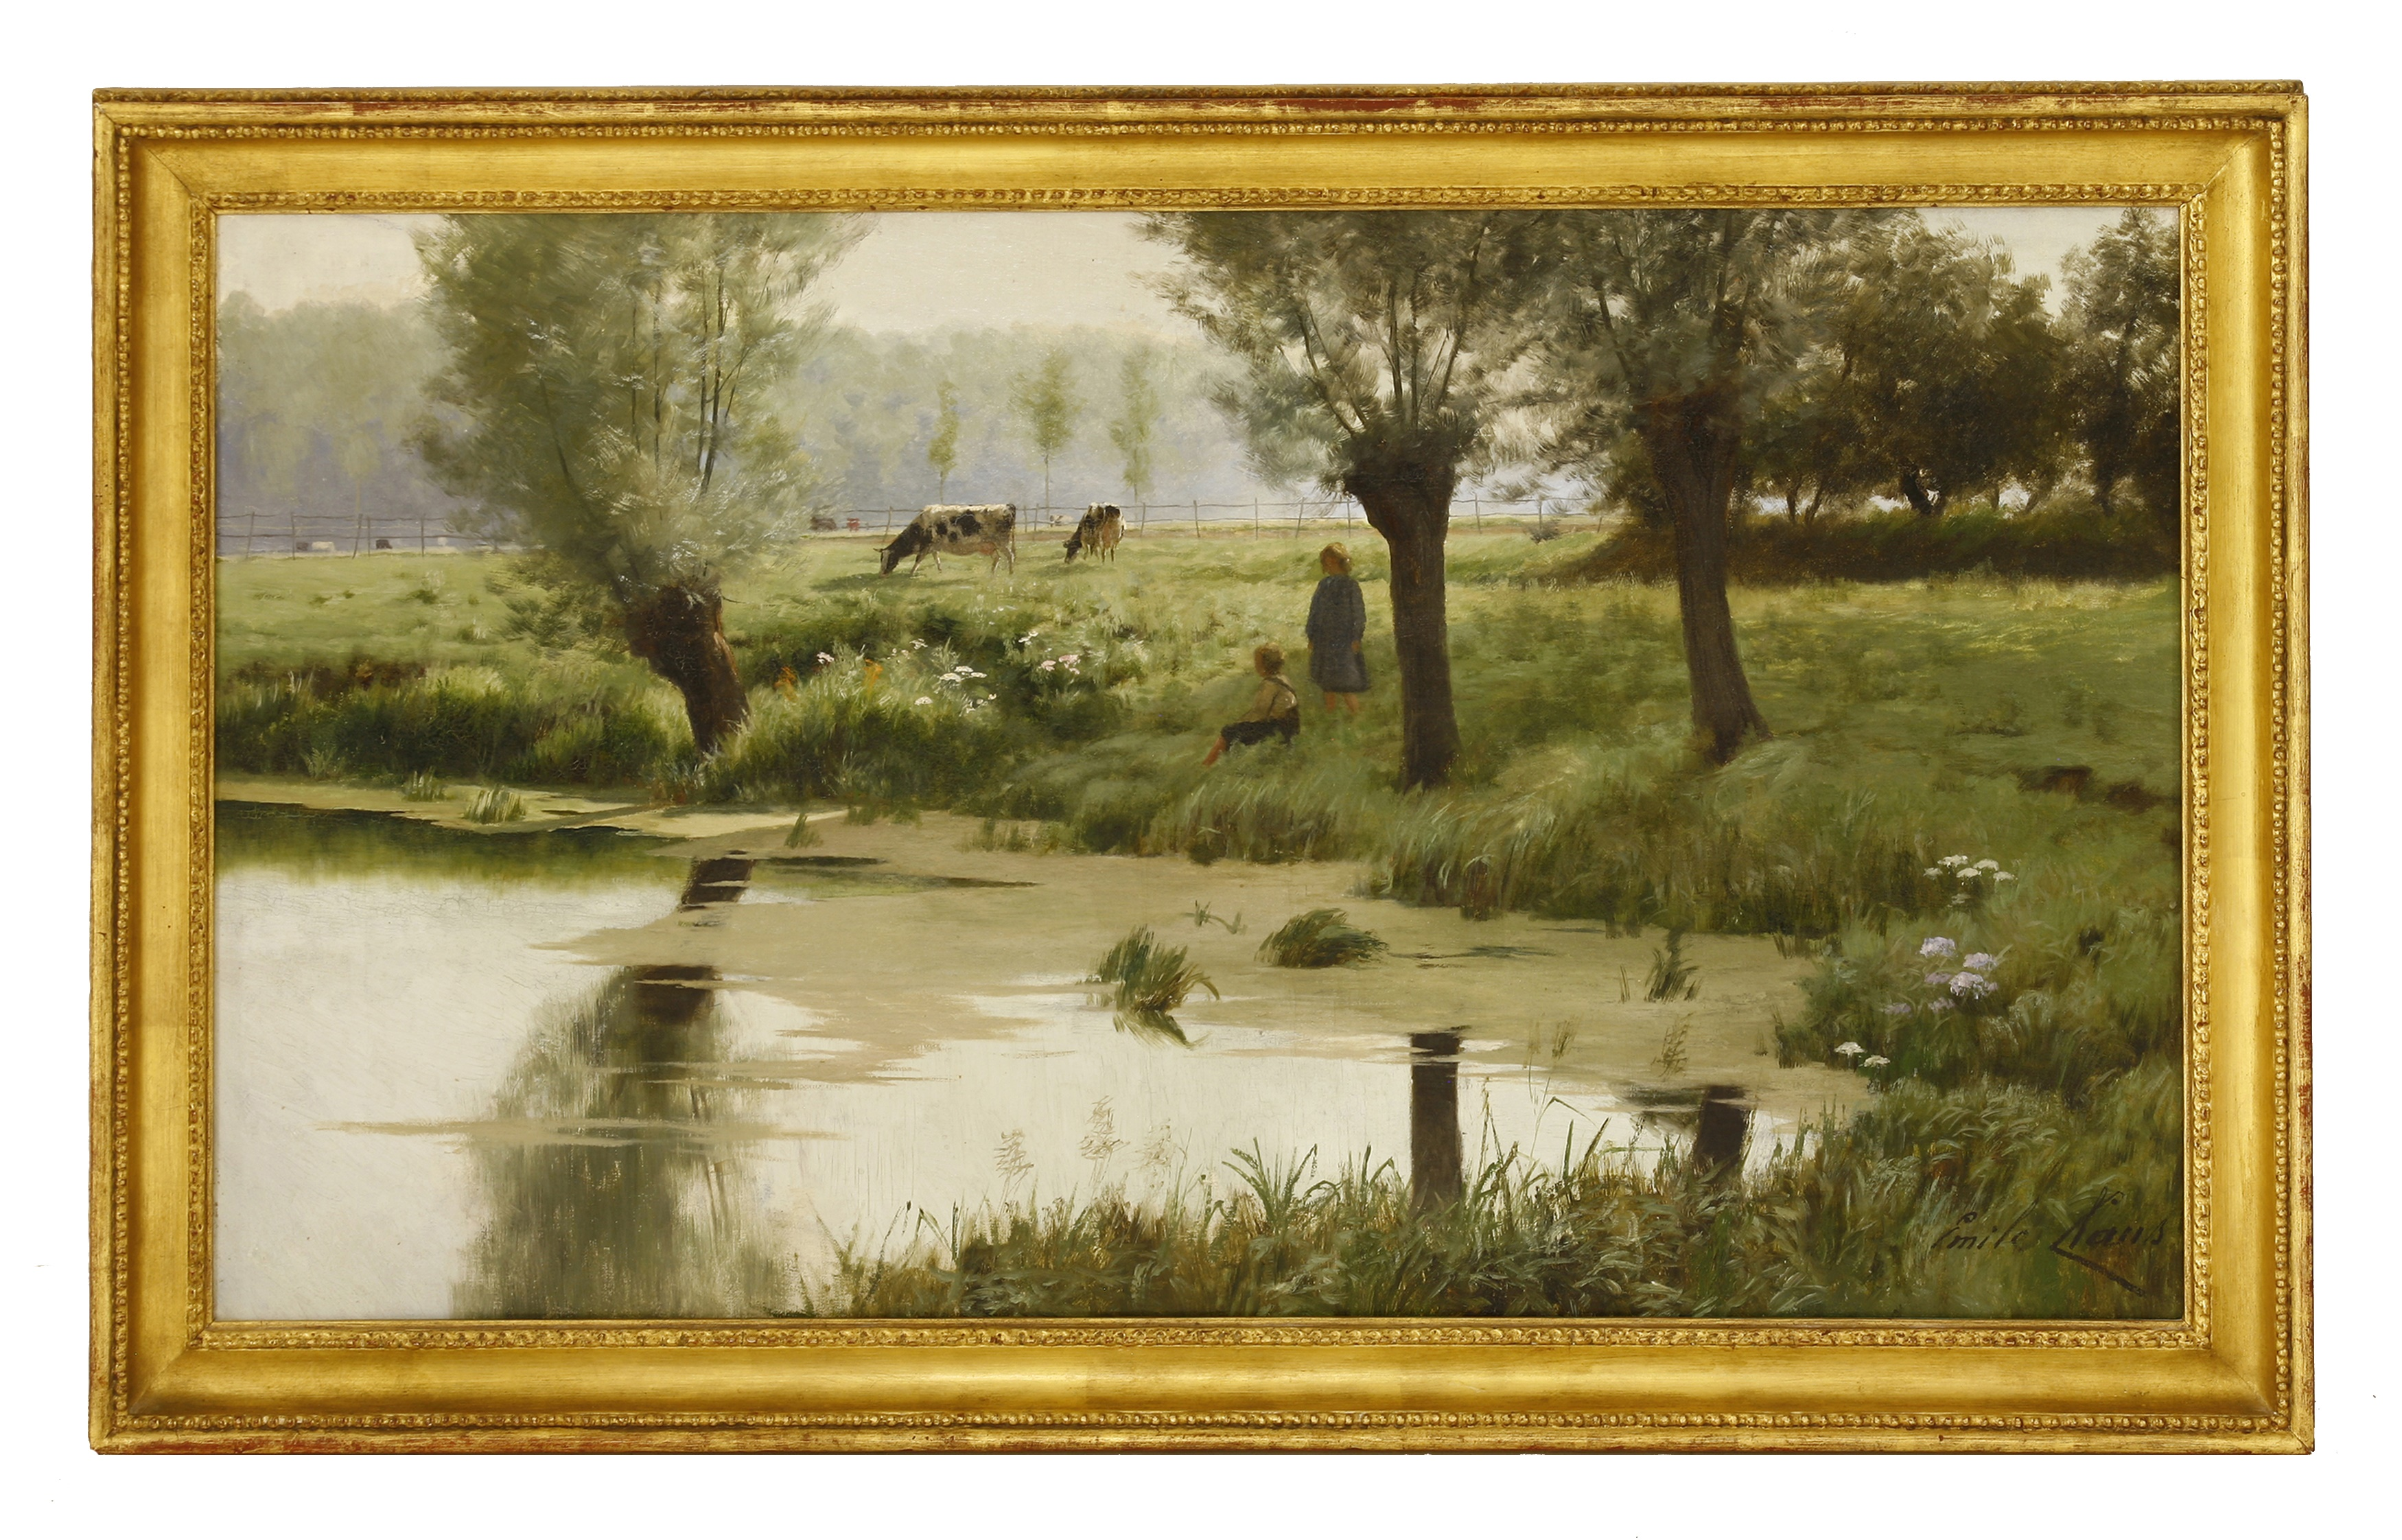 Emile Claus (Belgian, 1849-1924) A PASTORAL SCENE WITH CHILDREN AND CATTLE BY A POND